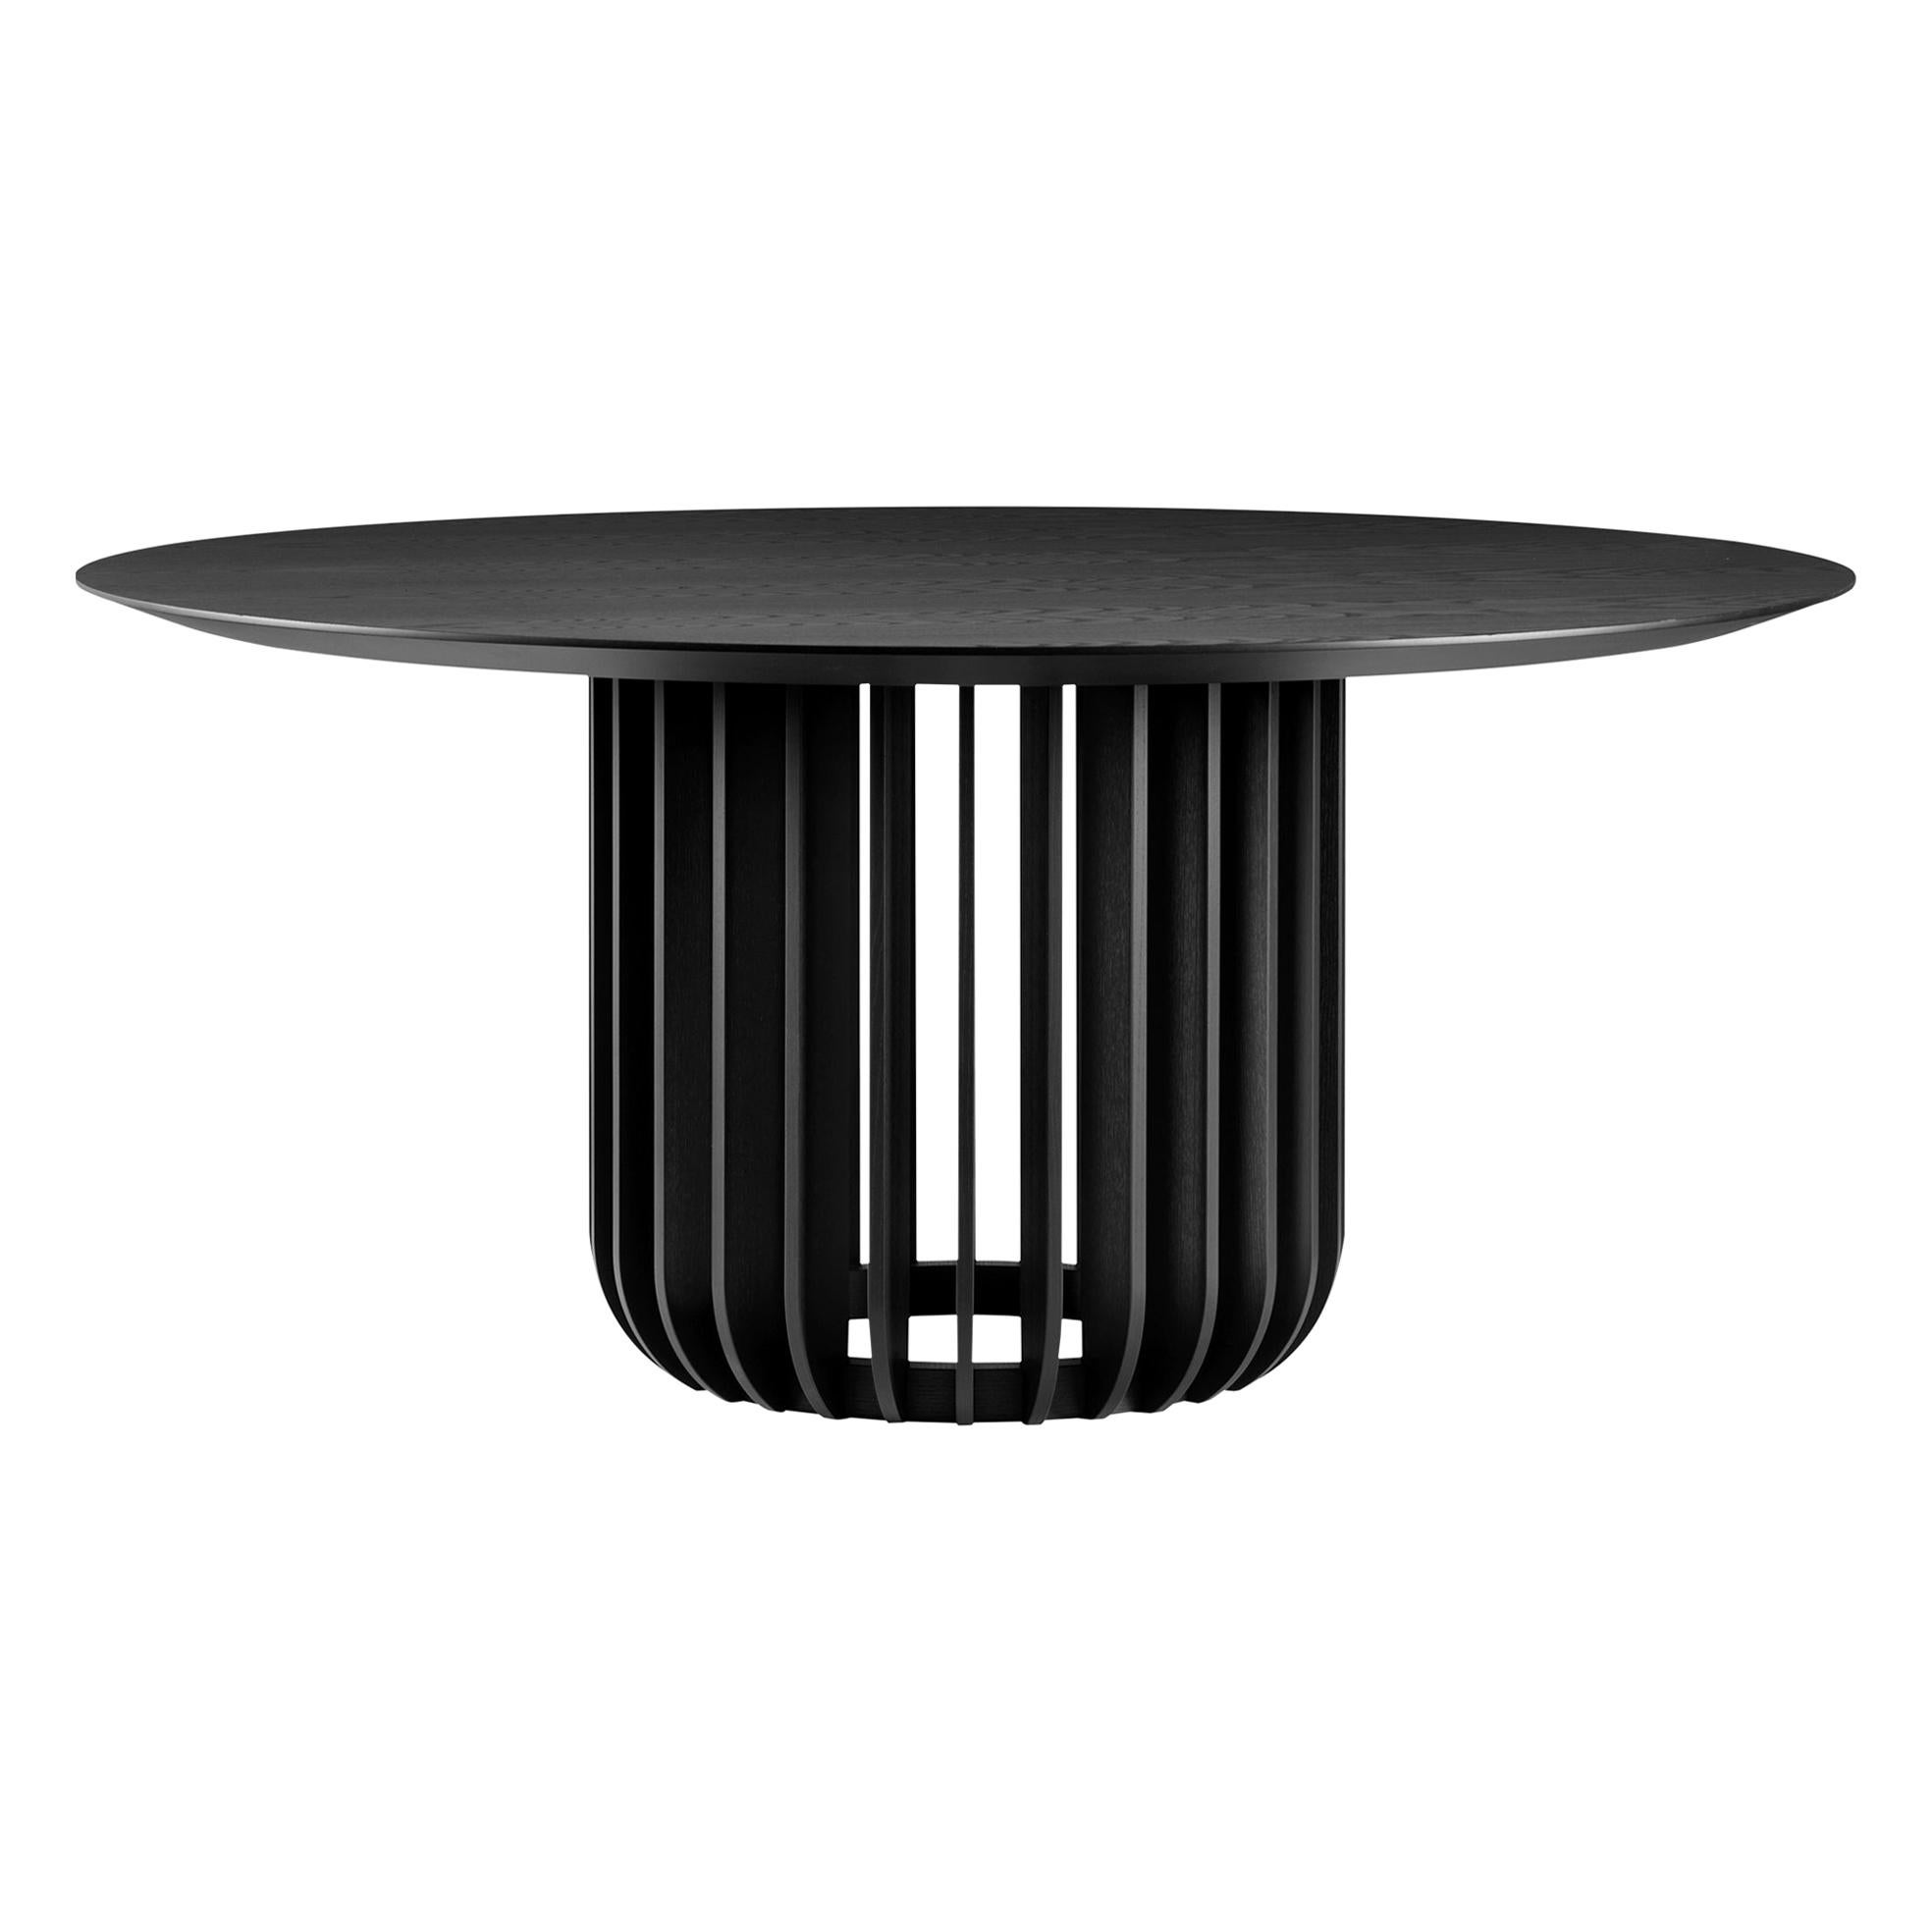 Juice Small Round Table with Black Ash Top and Base by E-GGS